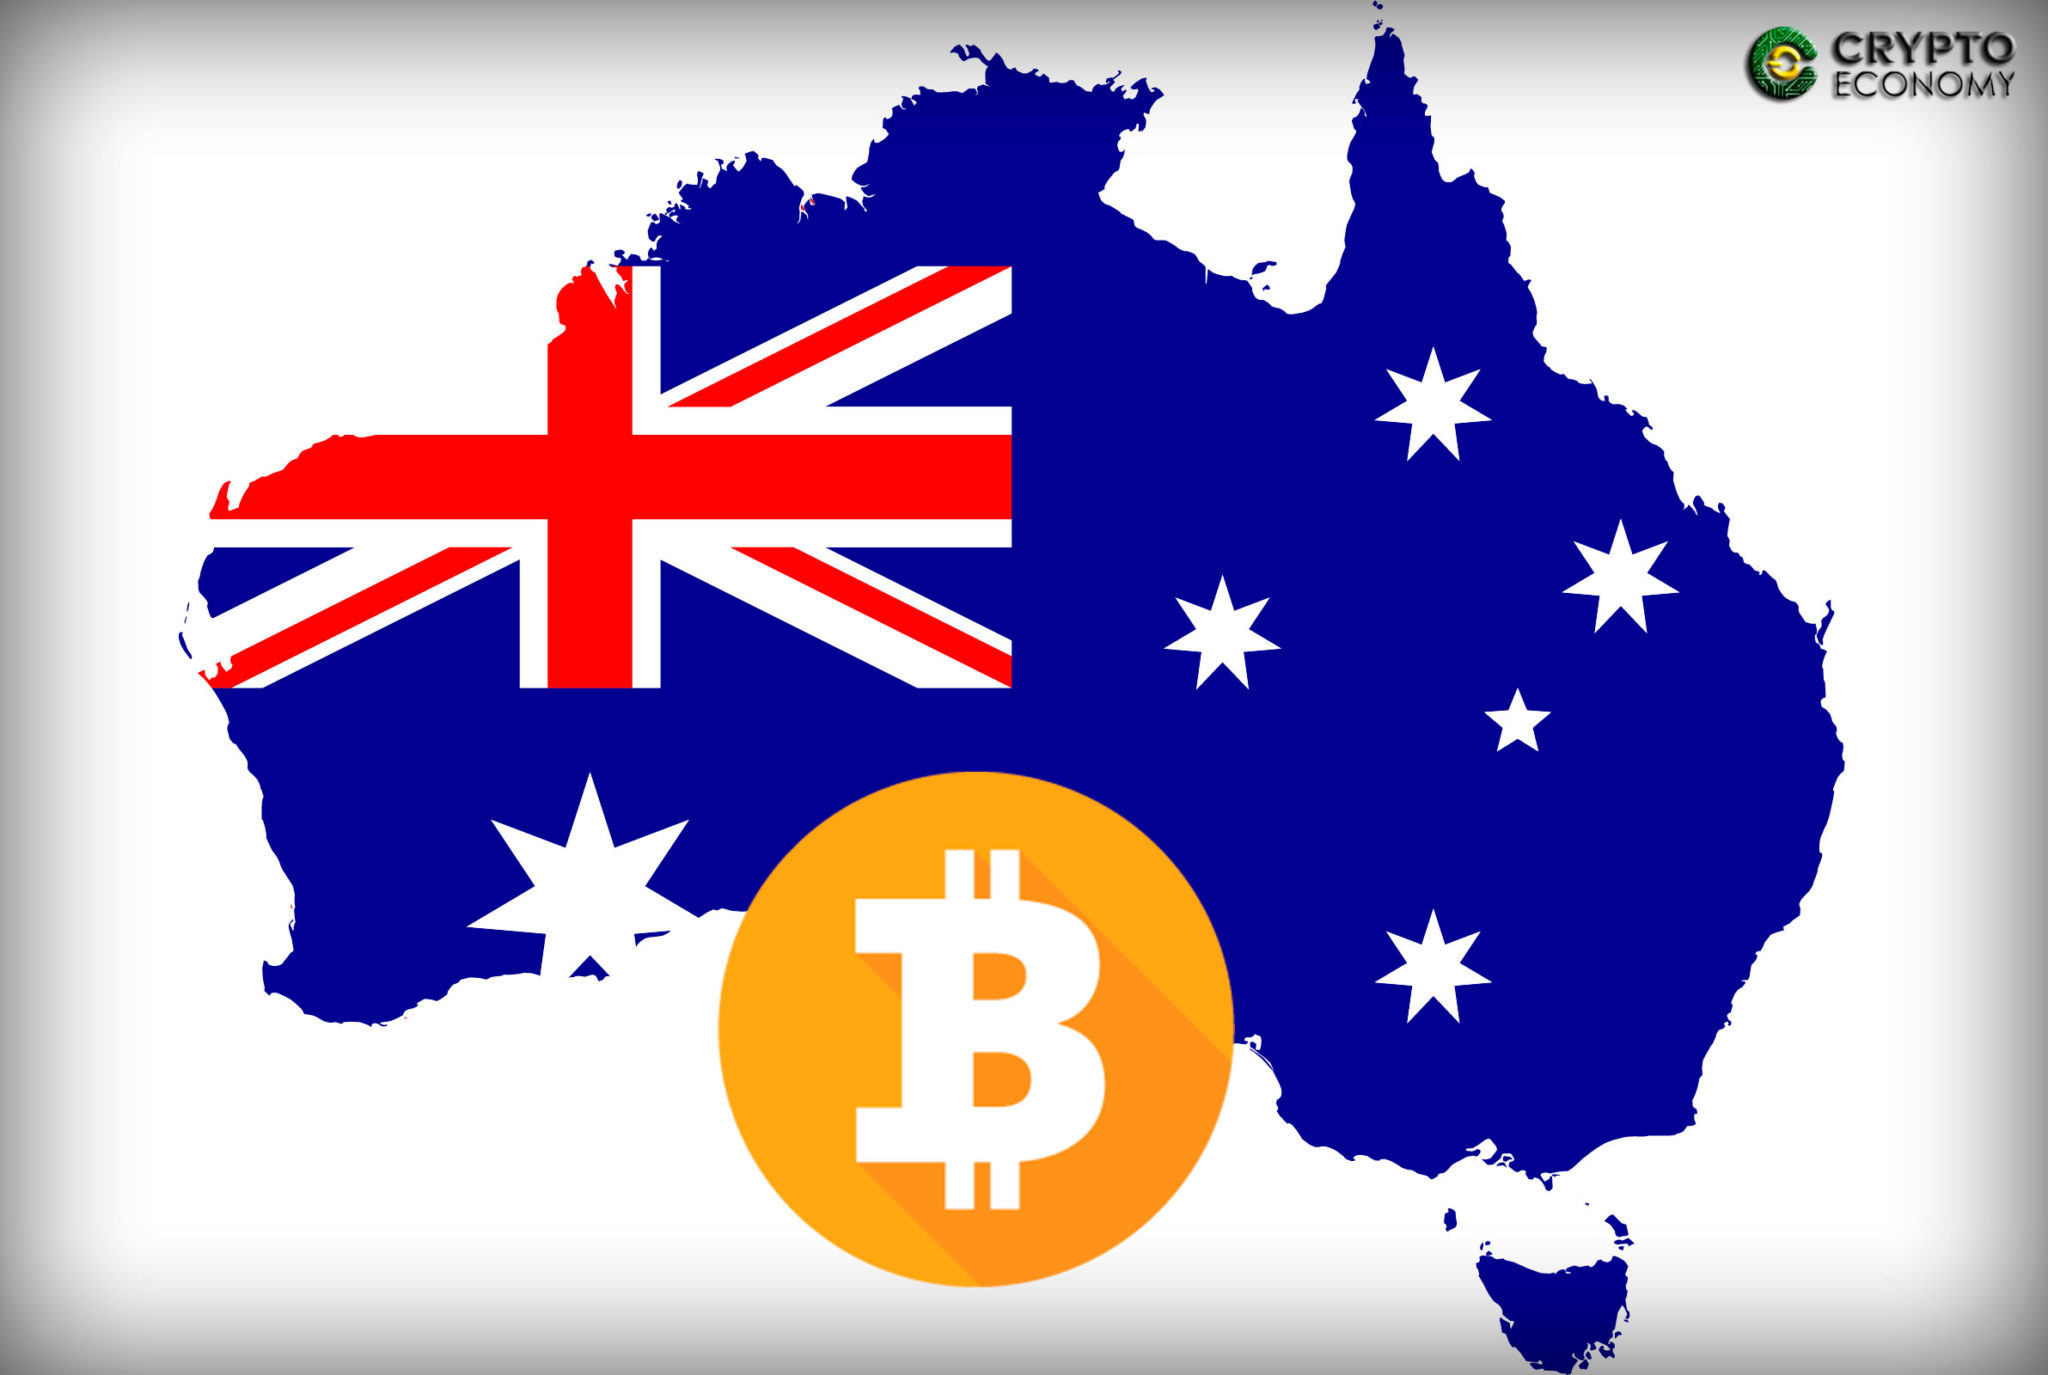 Australia's Blockchain Roadmap